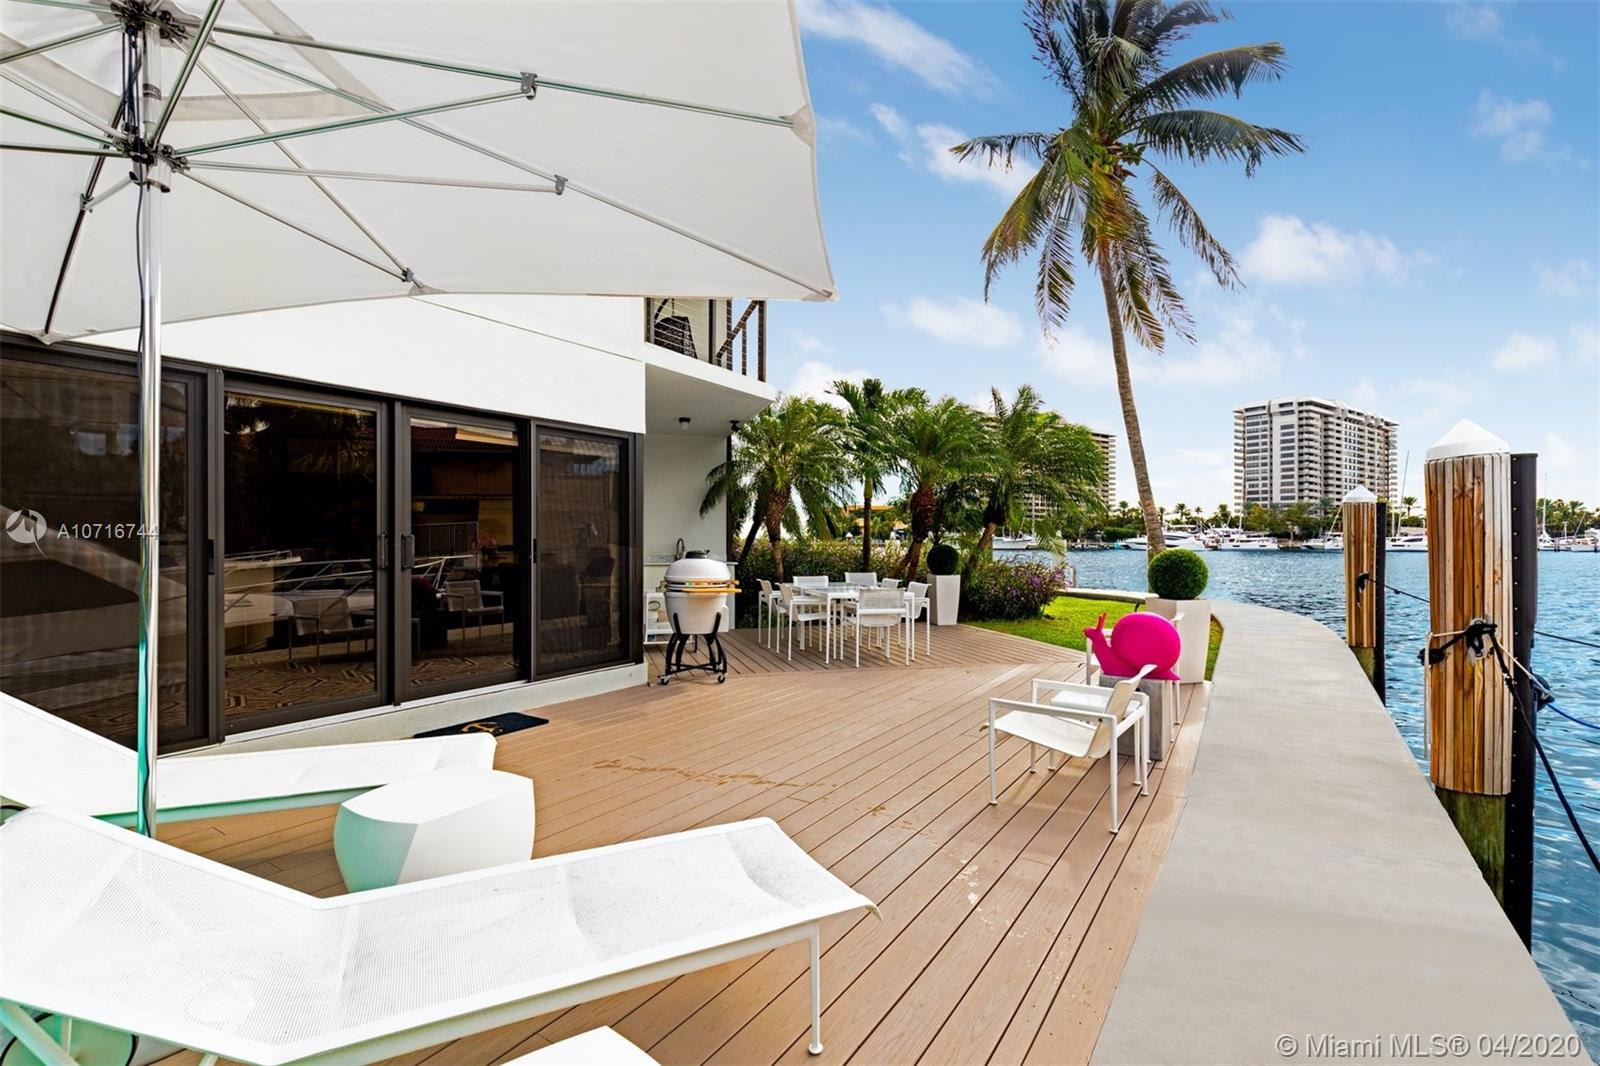 3570 W Fairview St #. For Sale A10716744, FL